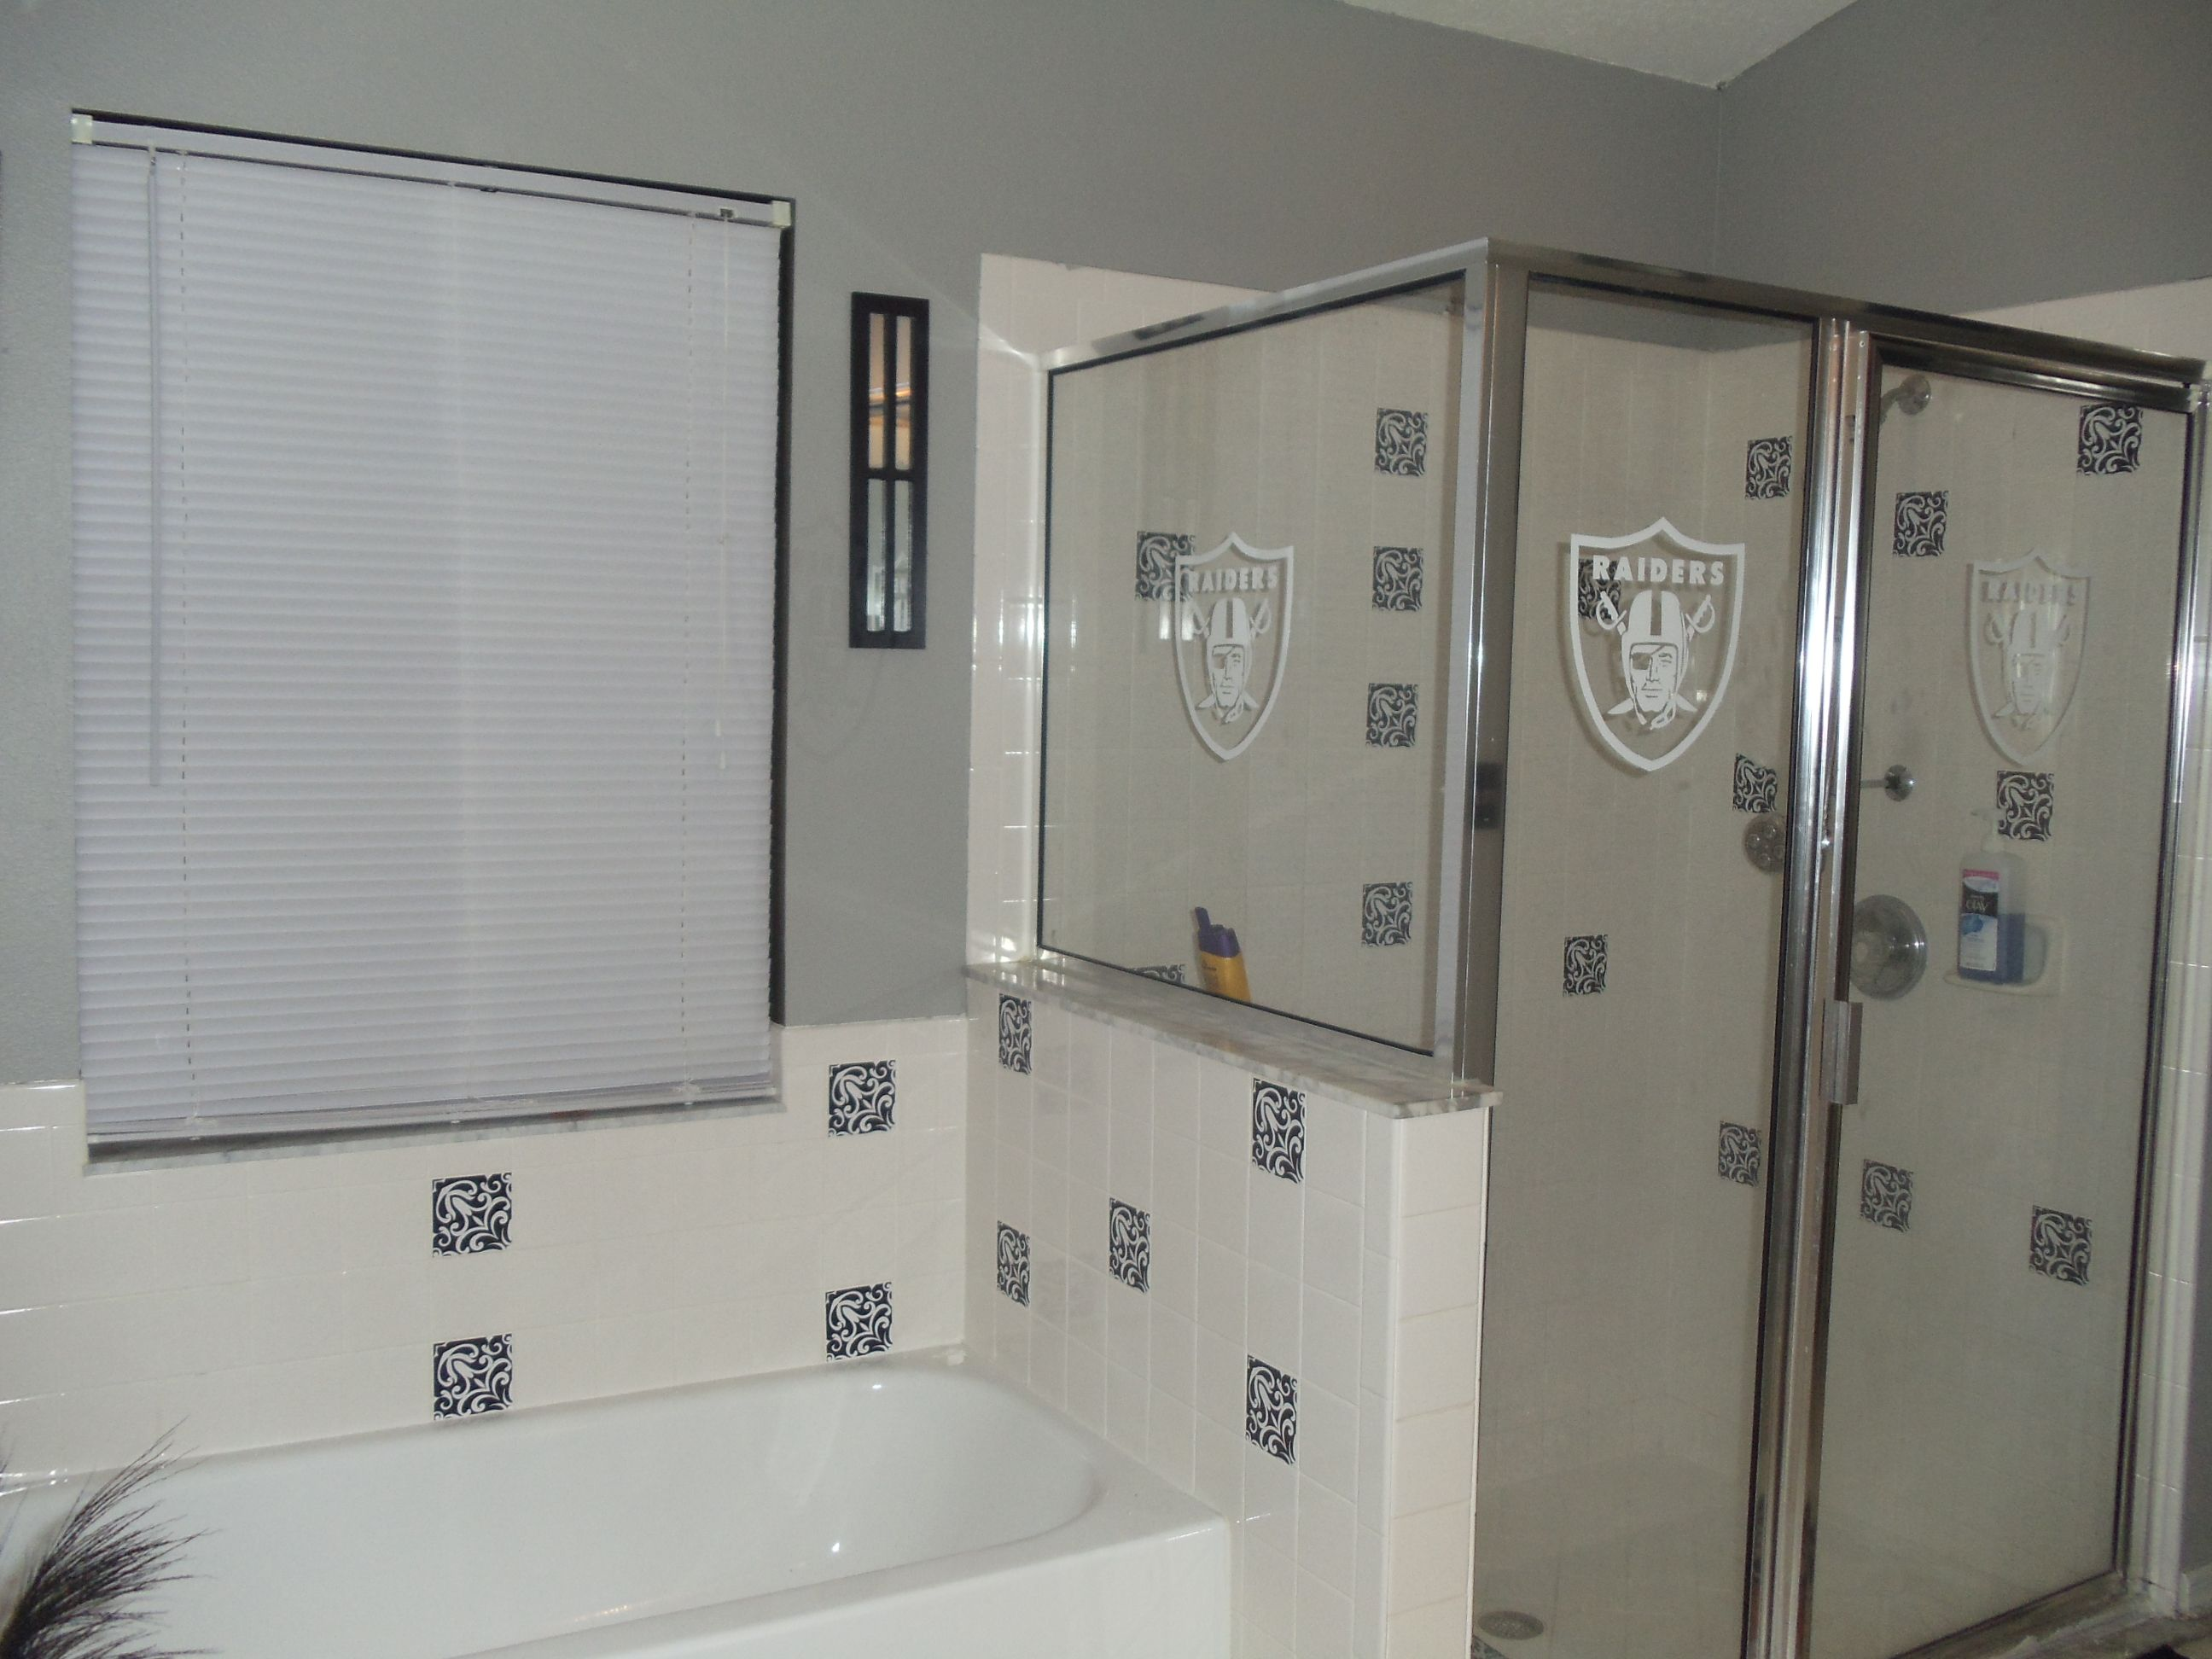 Raiders Bath   Black Decals Were Put On With Tile Decals From Amazon   Very  Easy